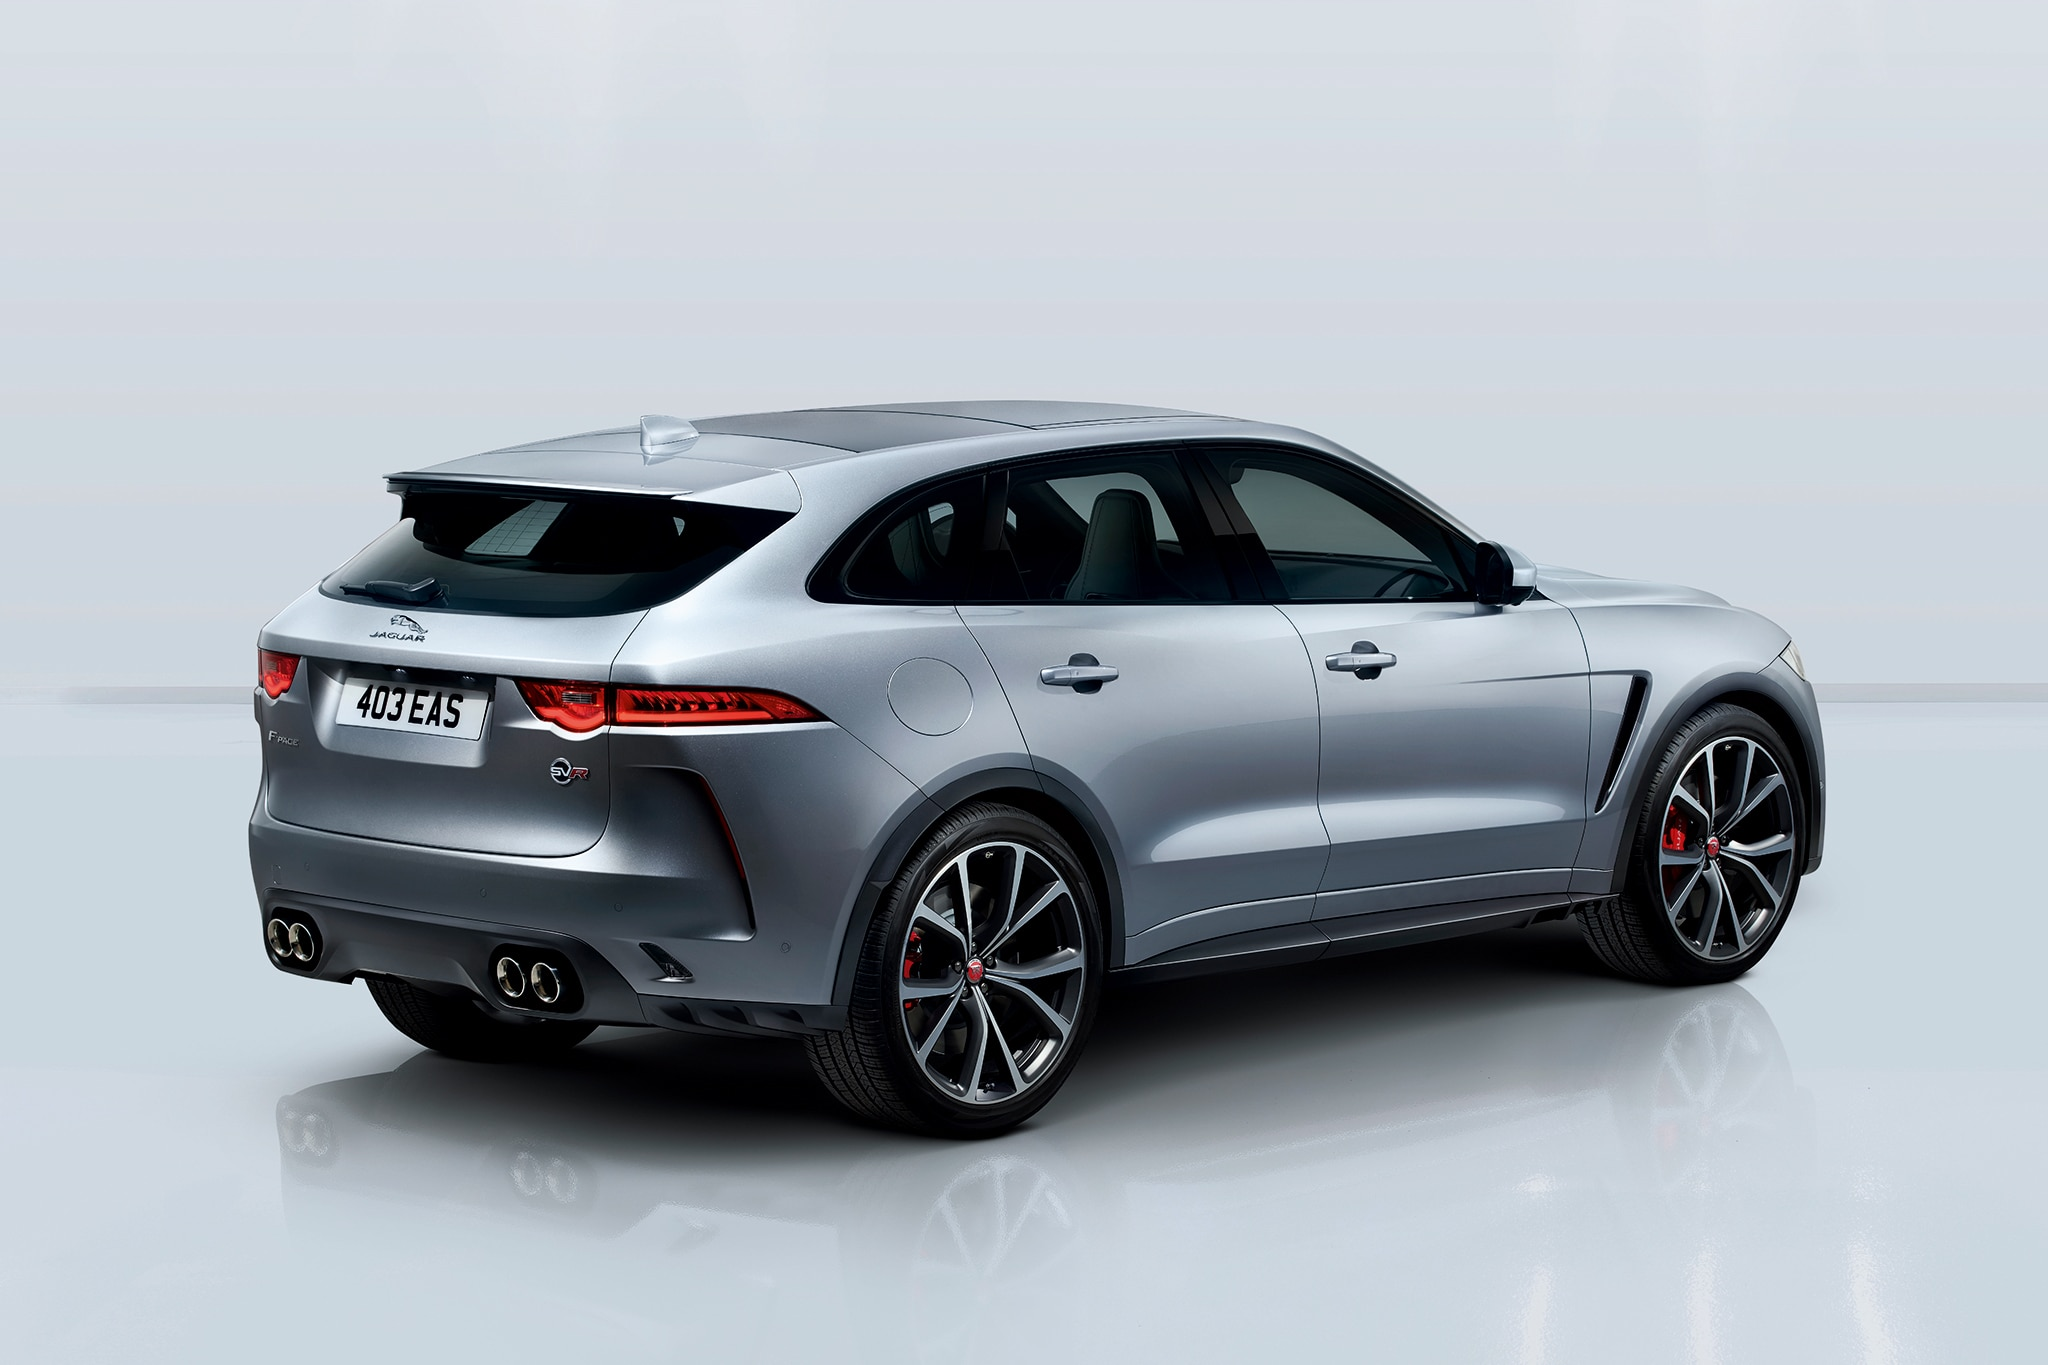 2019 Jaguar F-Pace SVR: News, Design, Engine, Price >> 550 Hp 2019 Jaguar F Pace Svr Is The V 8 Variant We Ve Been